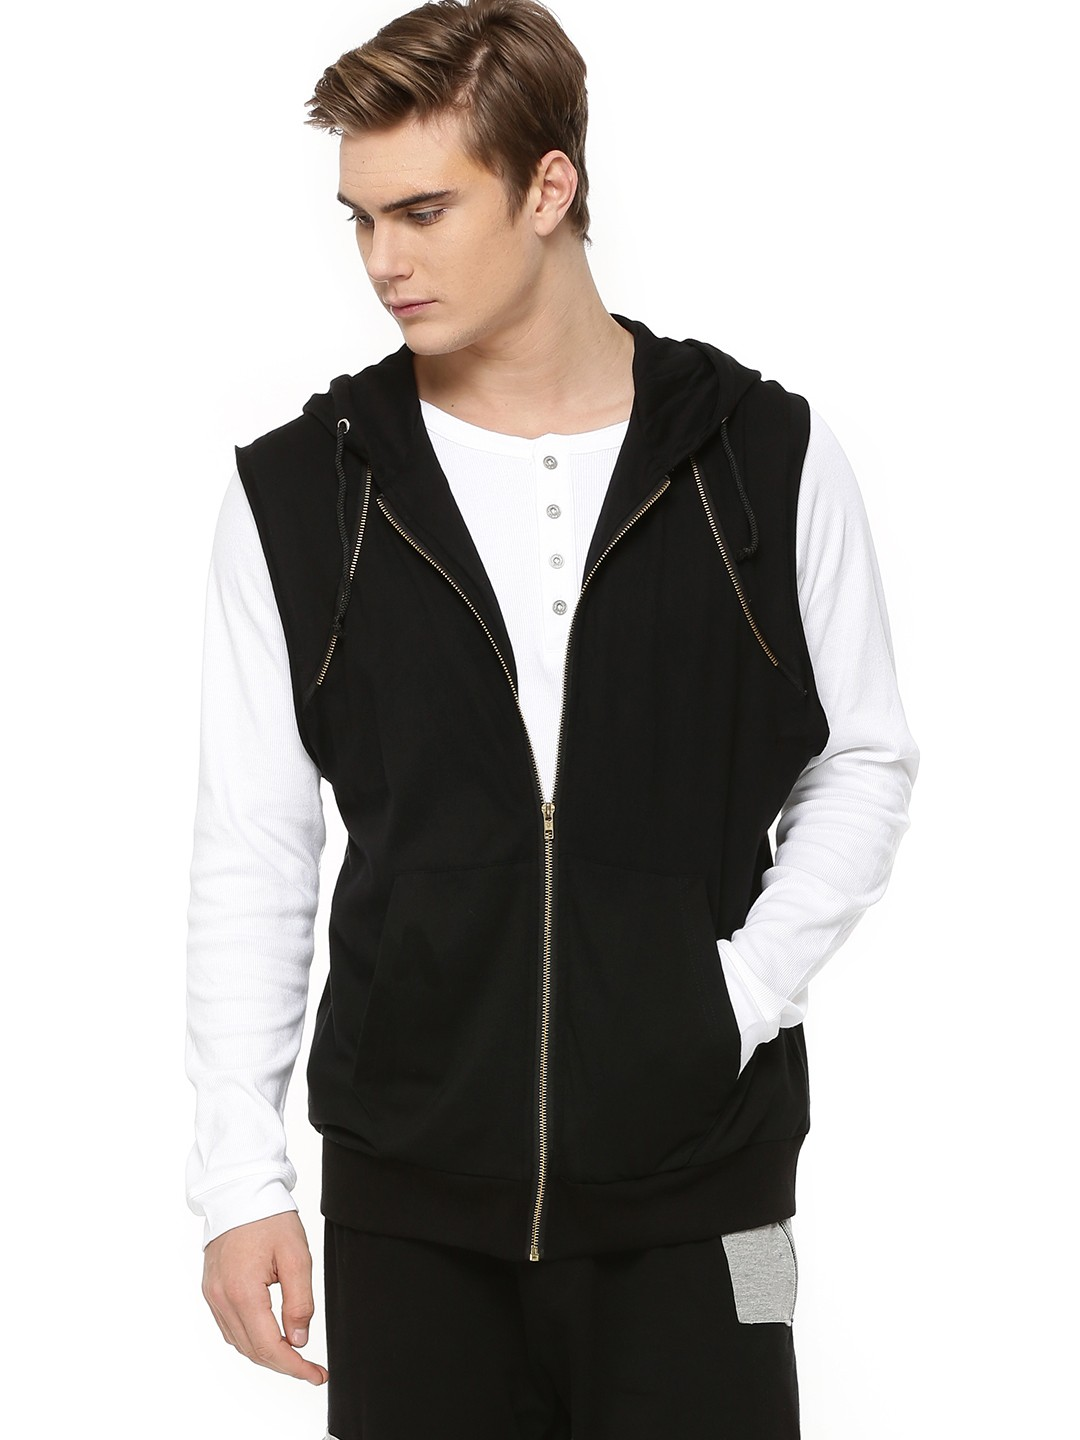 Shop a wide selection of sleeveless hoodies from DICK'S Sporting Goods for men, women and kids. Browse all top-rated sleeveless hoodies and sweatshirts from the best brands.